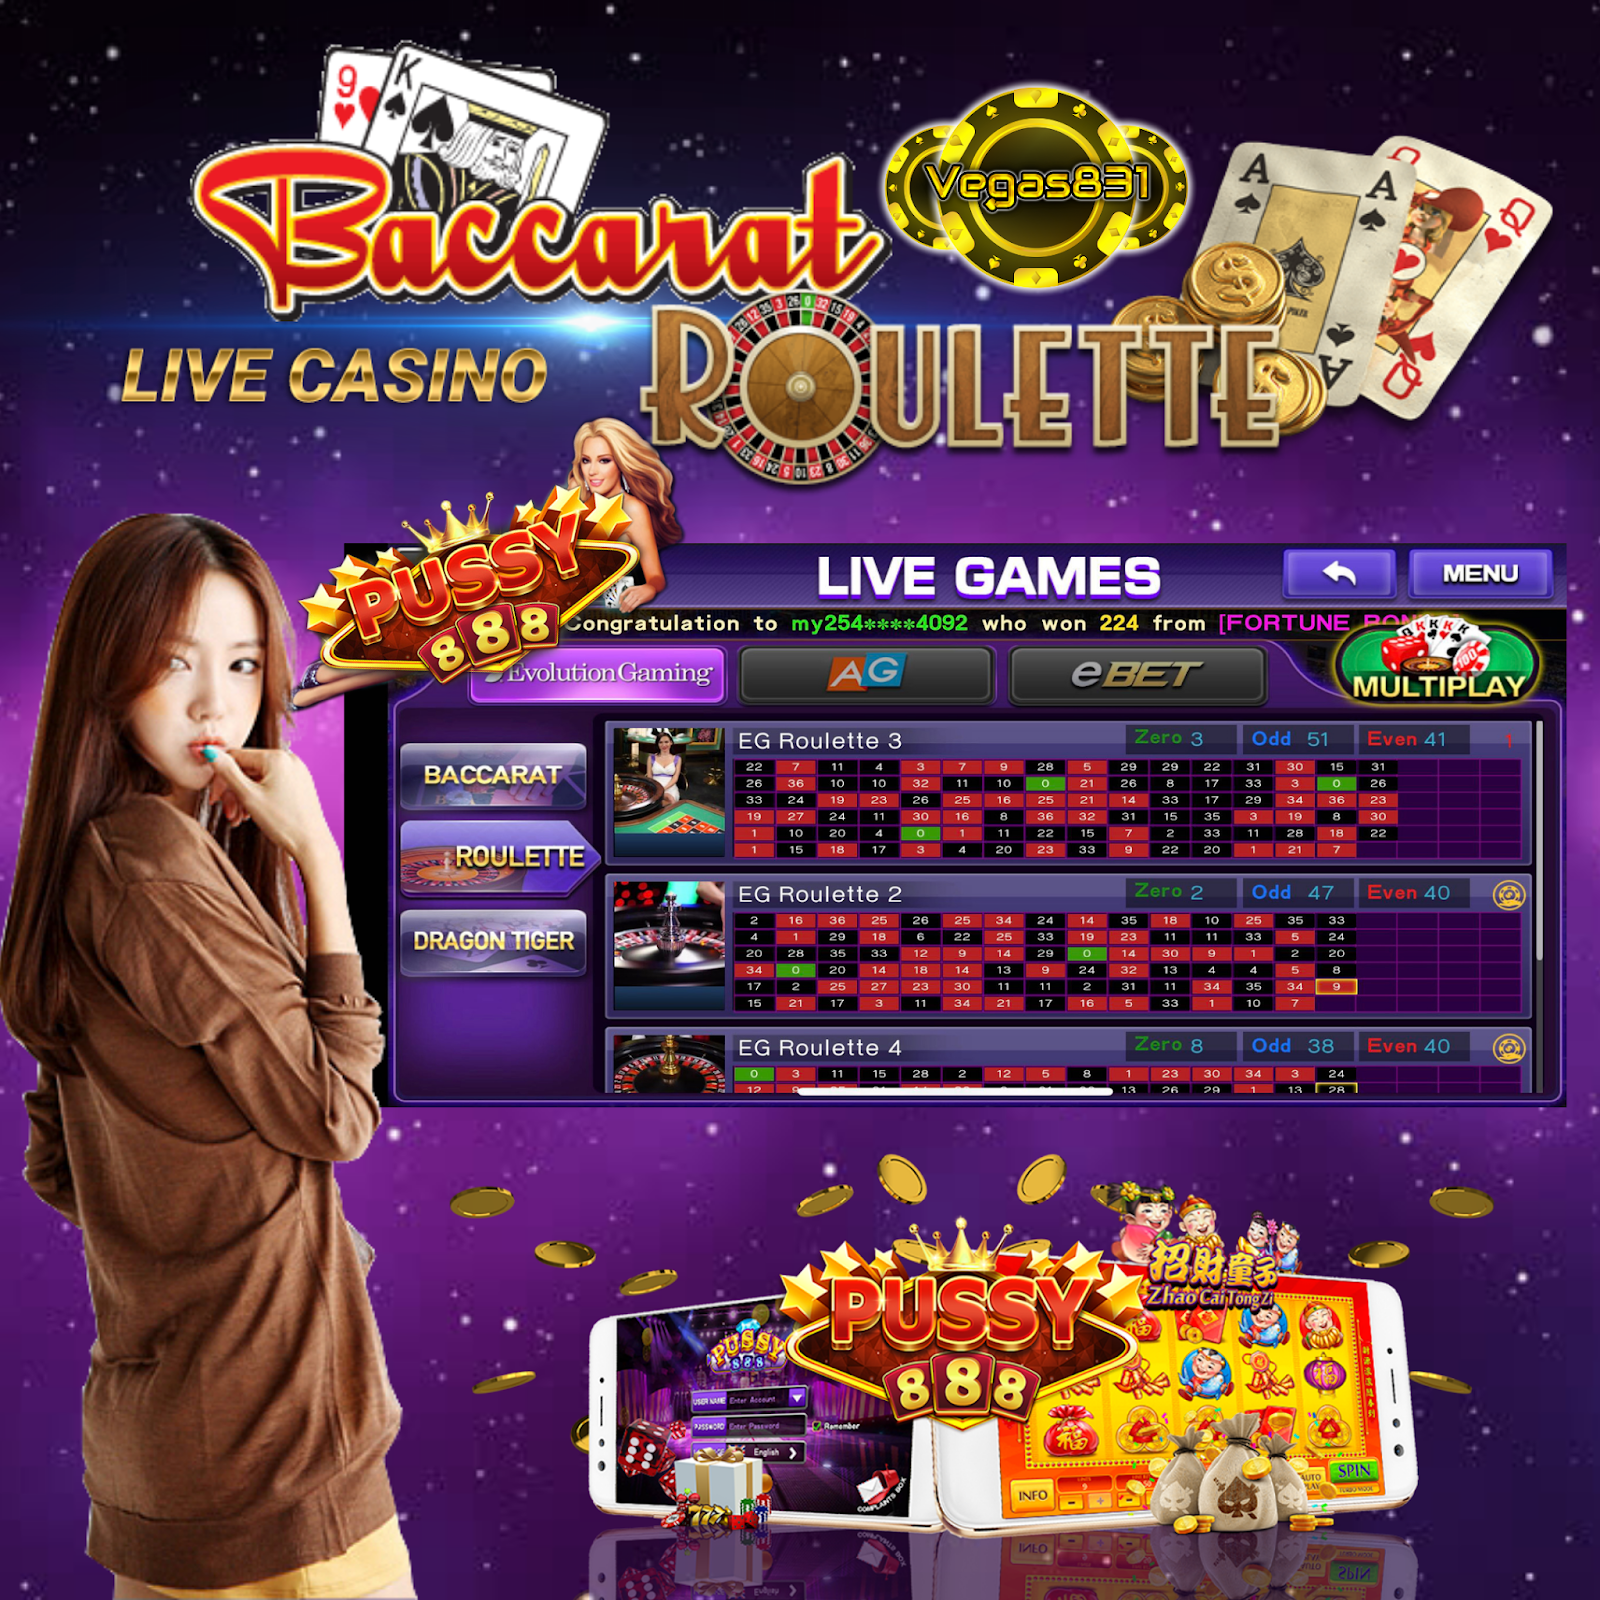 Millionaire Casino Offering An Array Of Card And Table Games